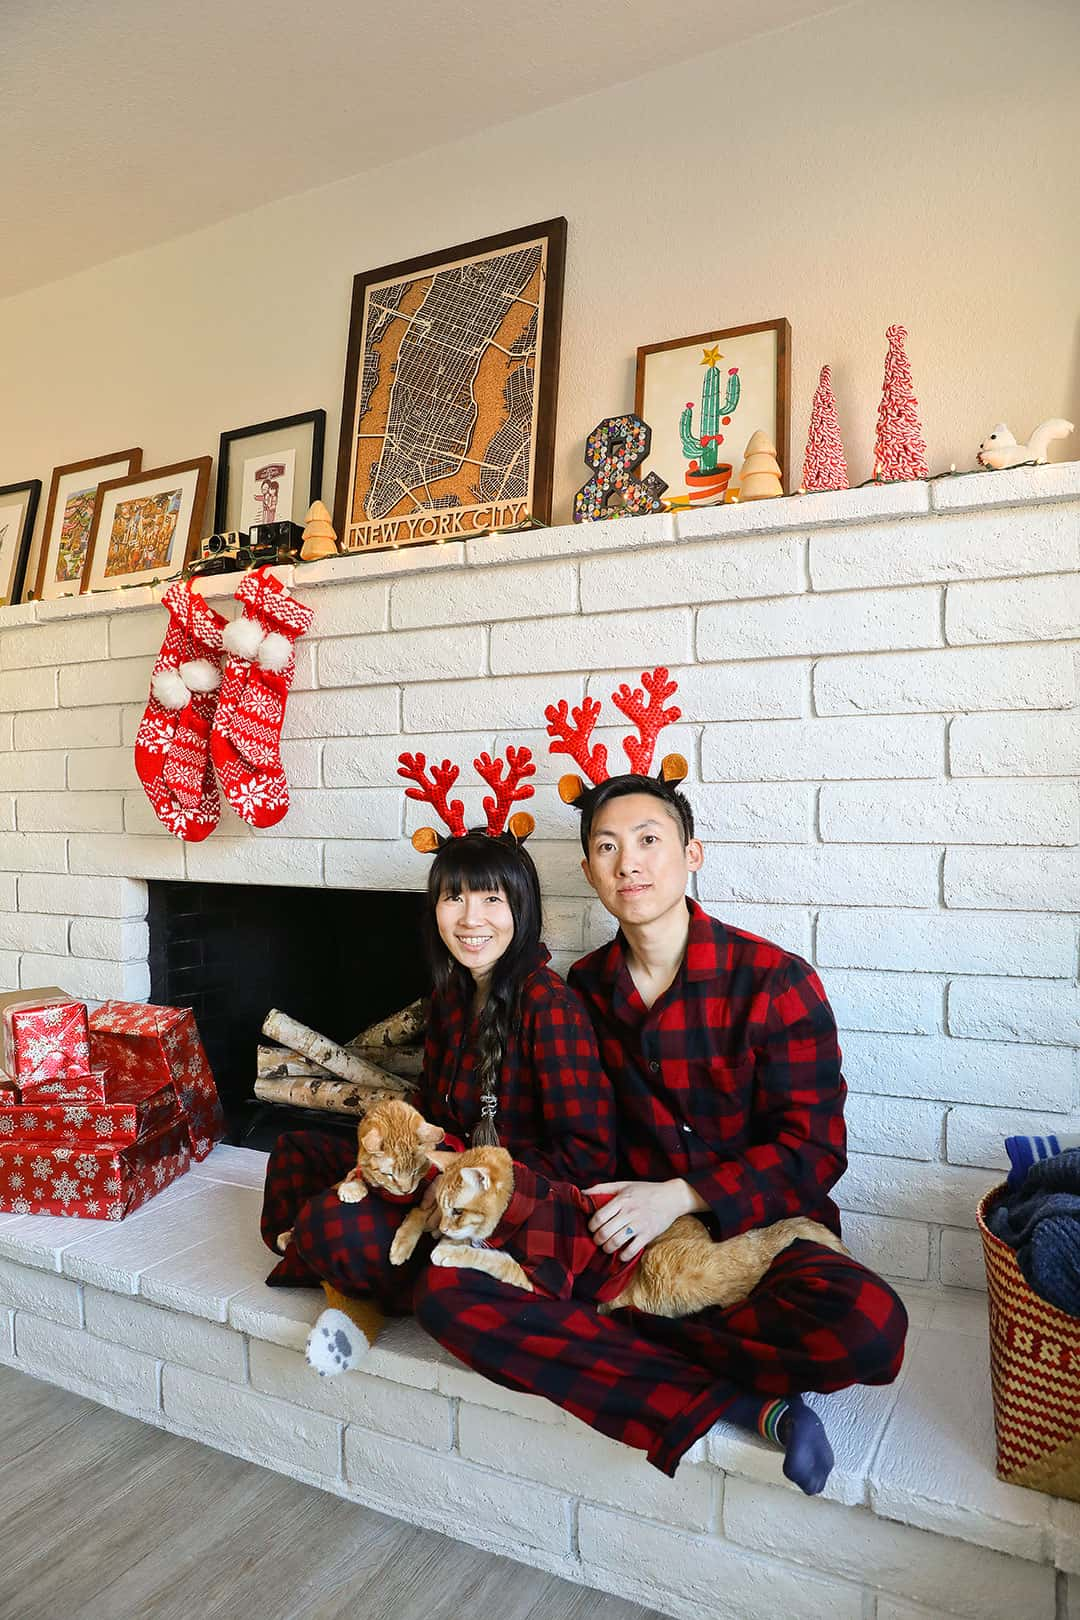 Buffalo Plaid Christmas Pajamas from LL Bean